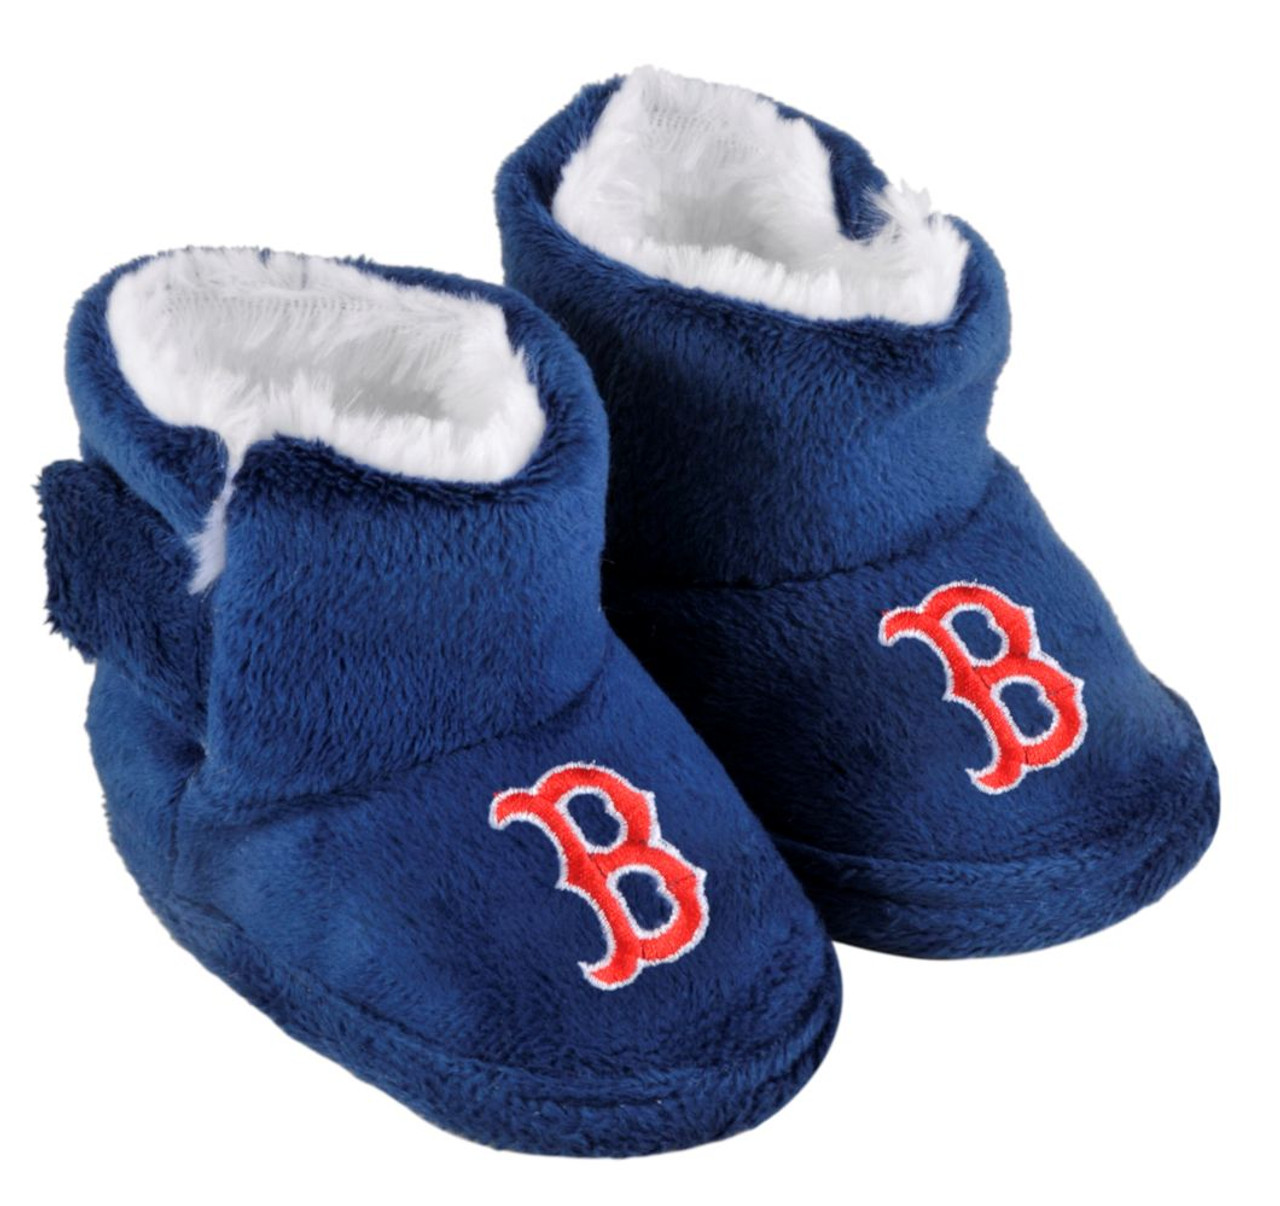 Boston Red Sox Slippers - Baby High